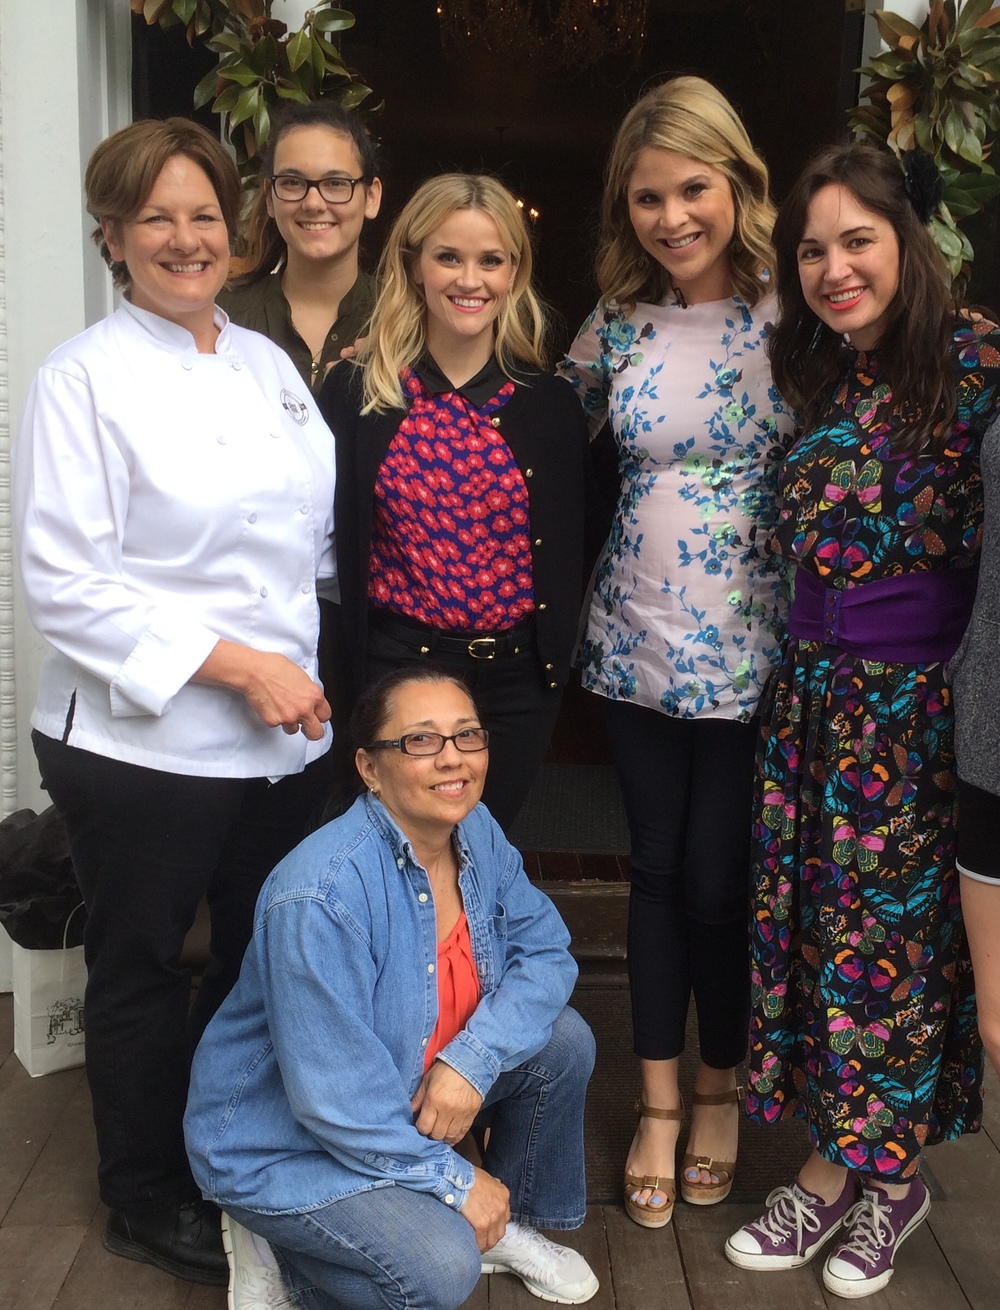 Staff with Reese Witherspoon and Jenna Bush Hager